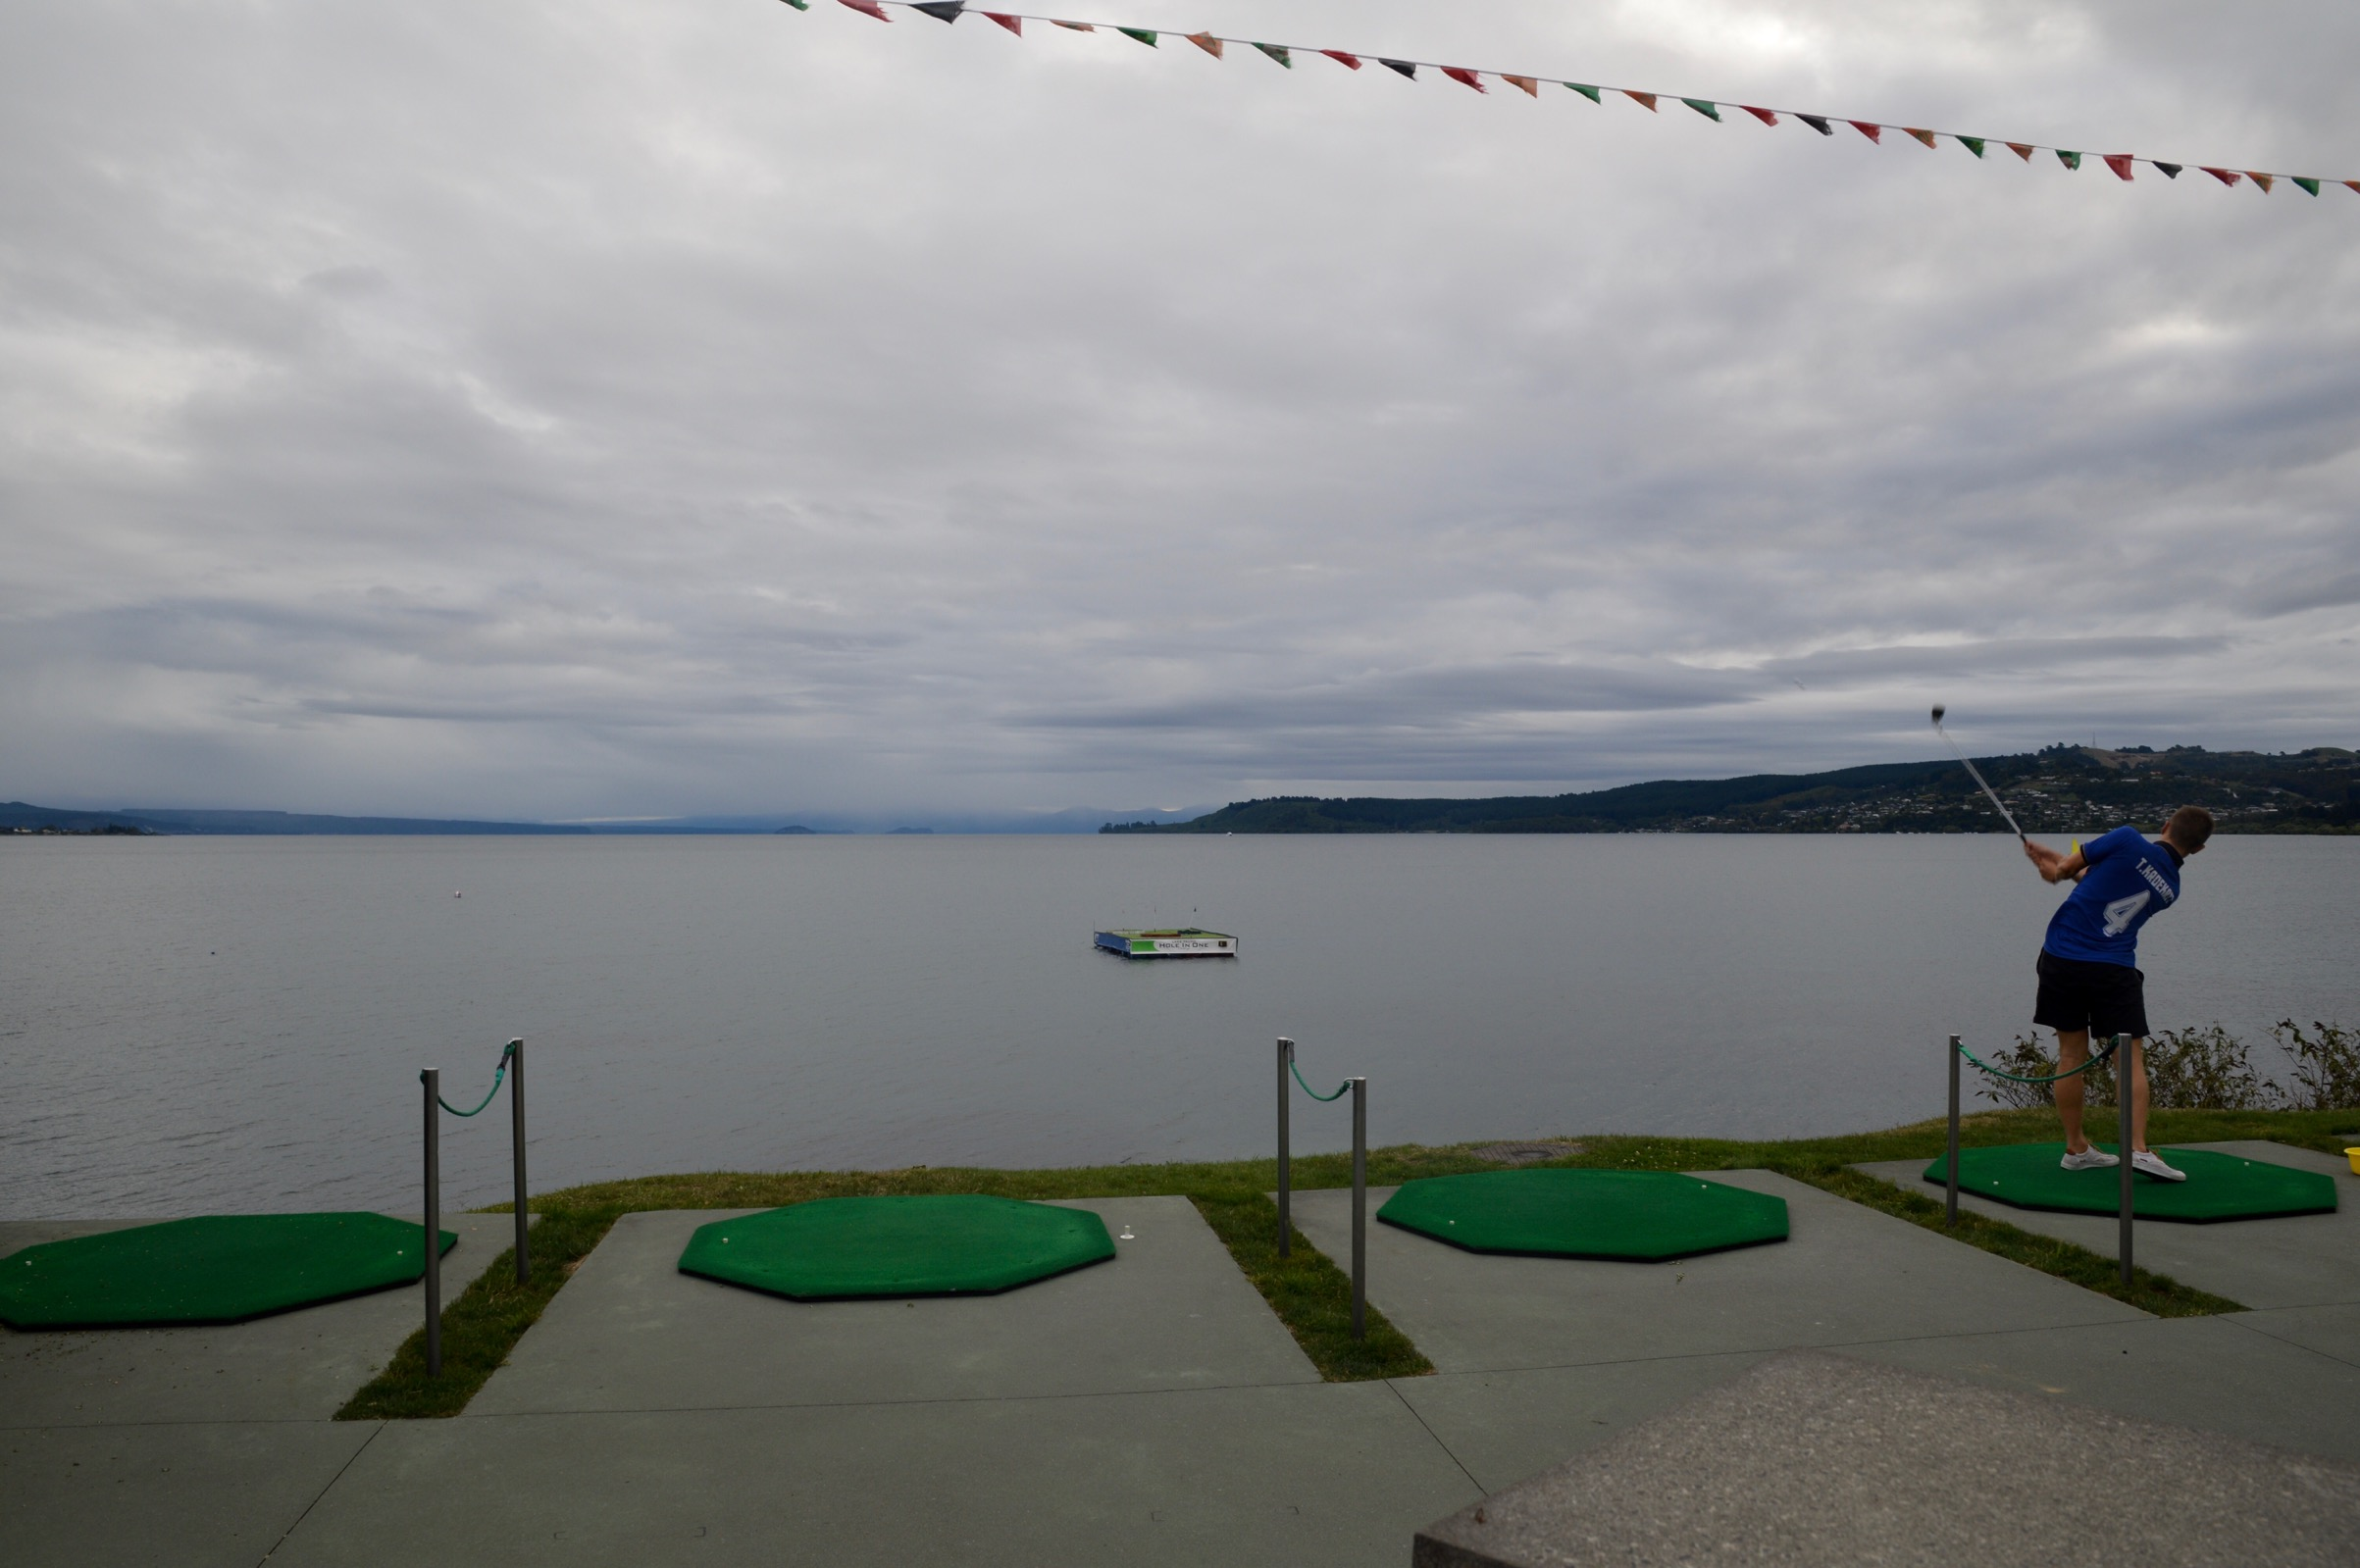 Hole in One on Lake Taupo, New Zealand